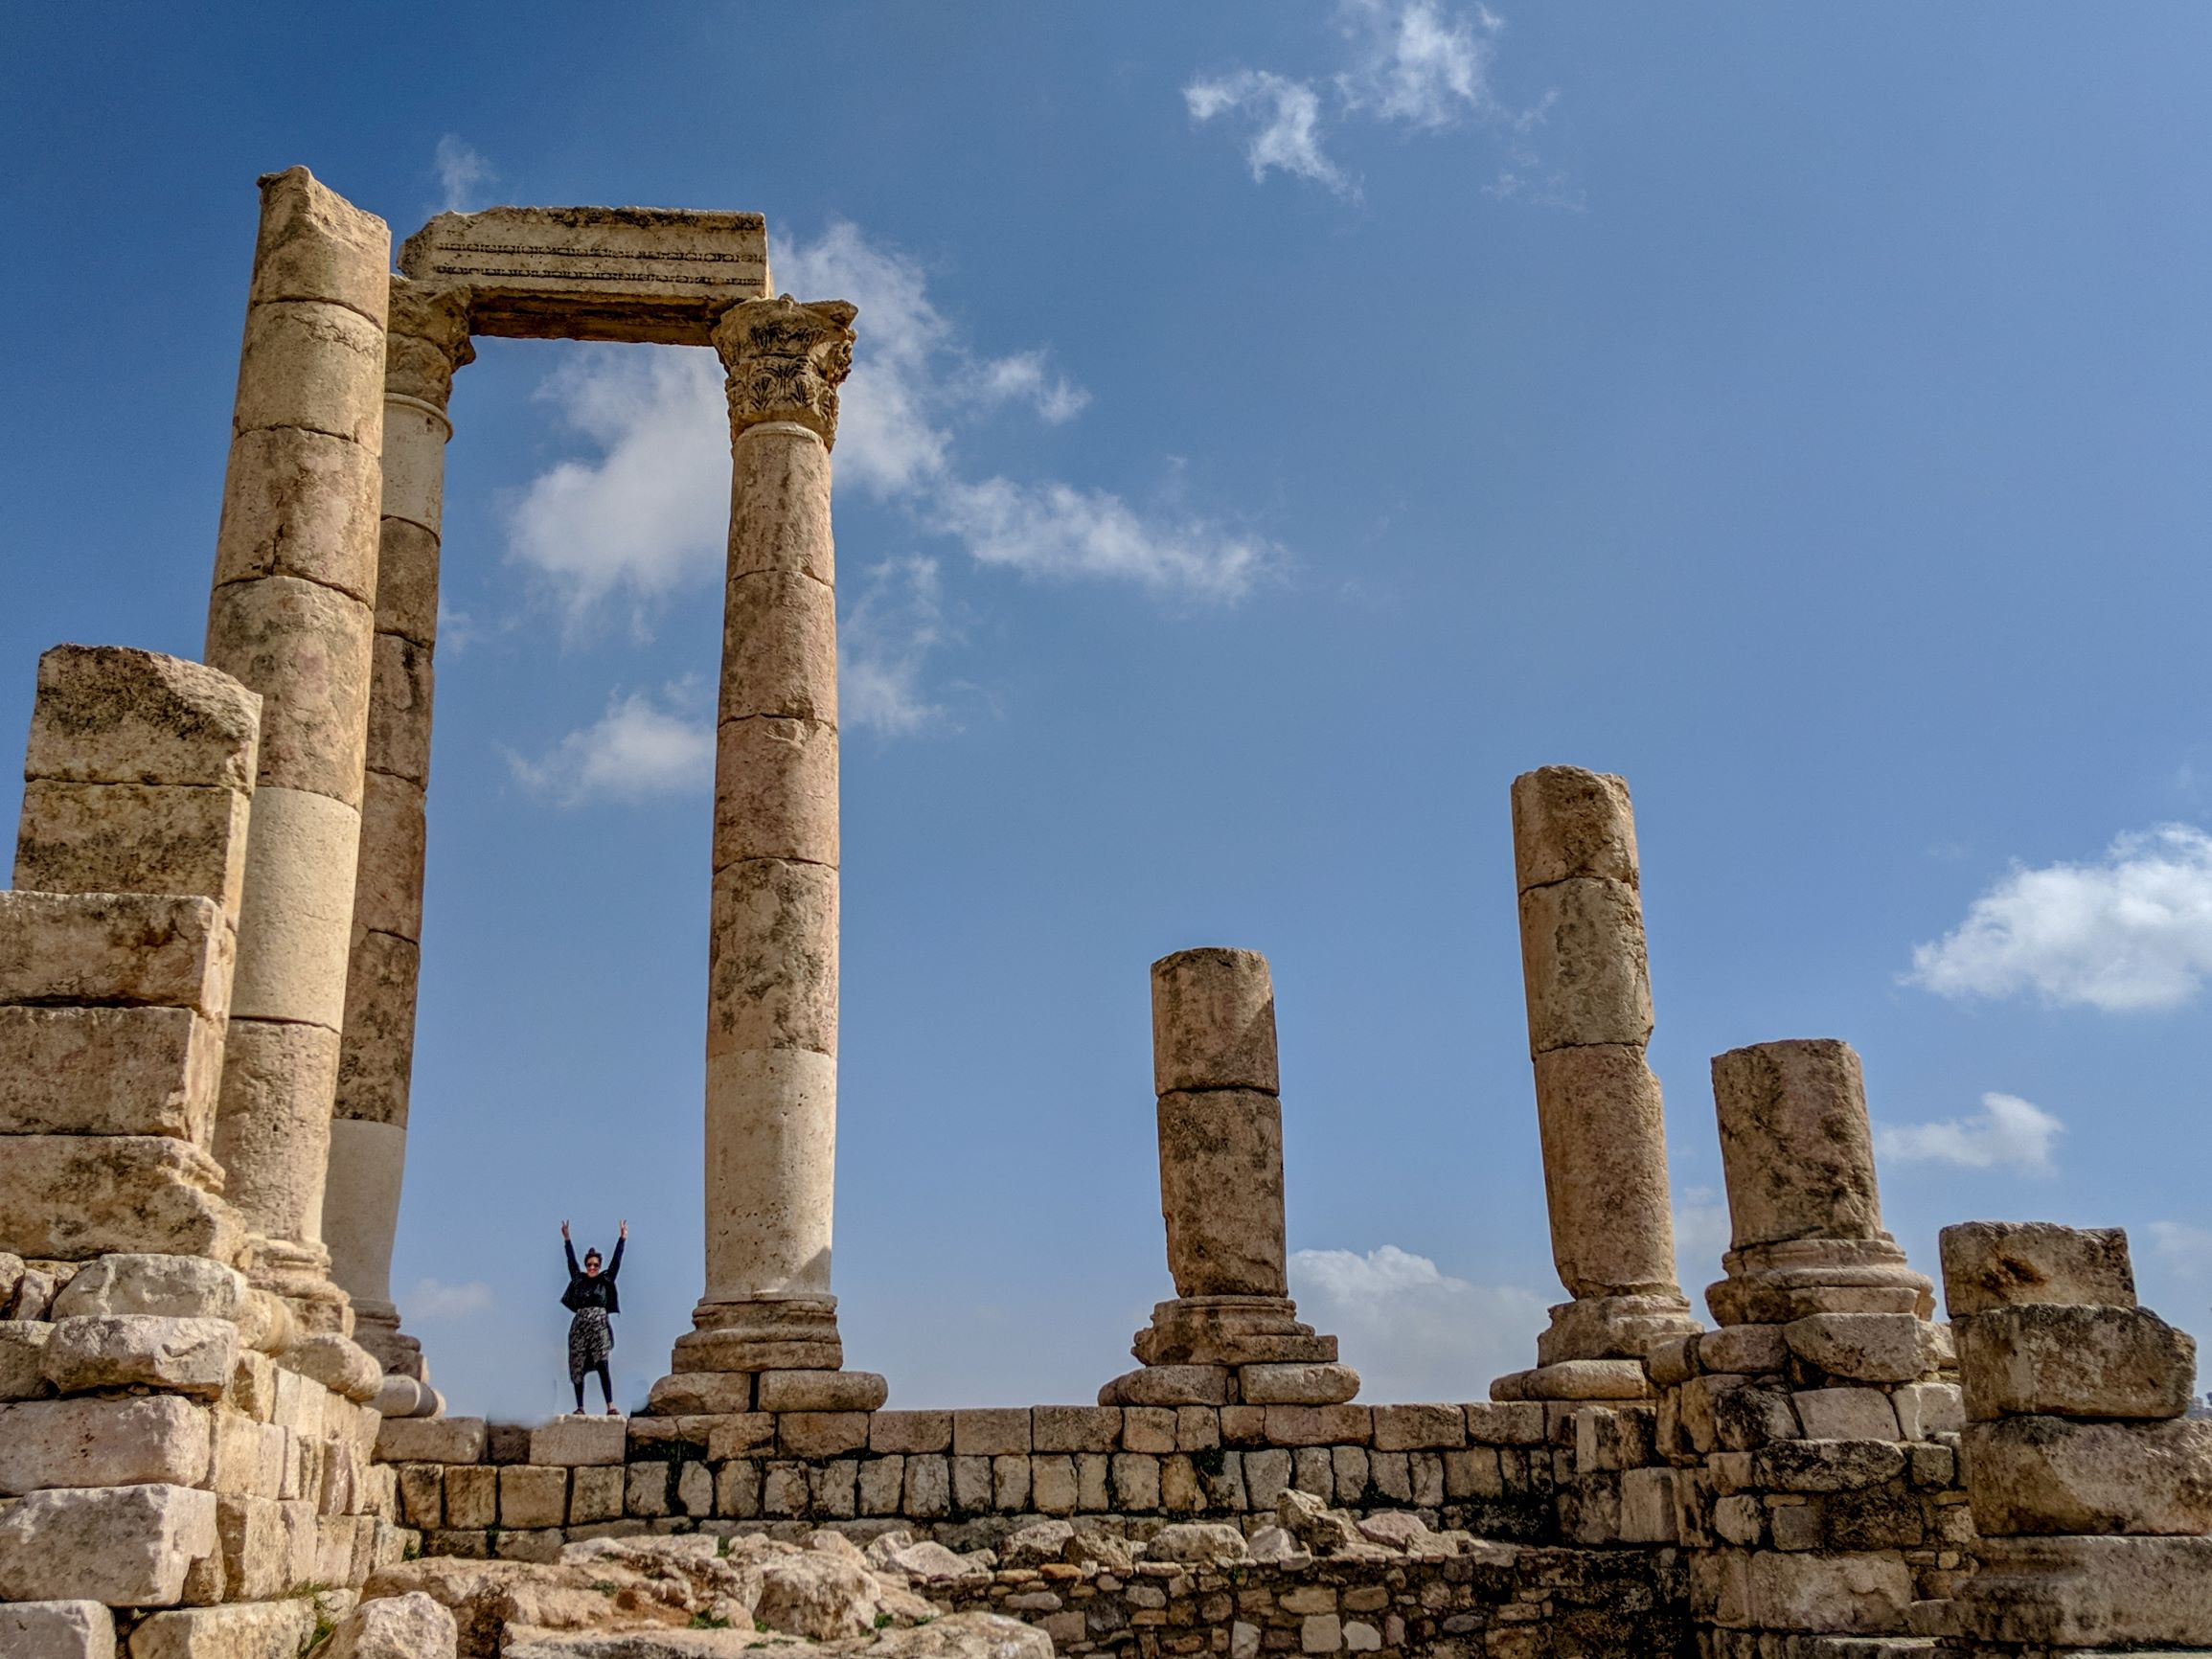 The Citadel of Amman, Jordan.